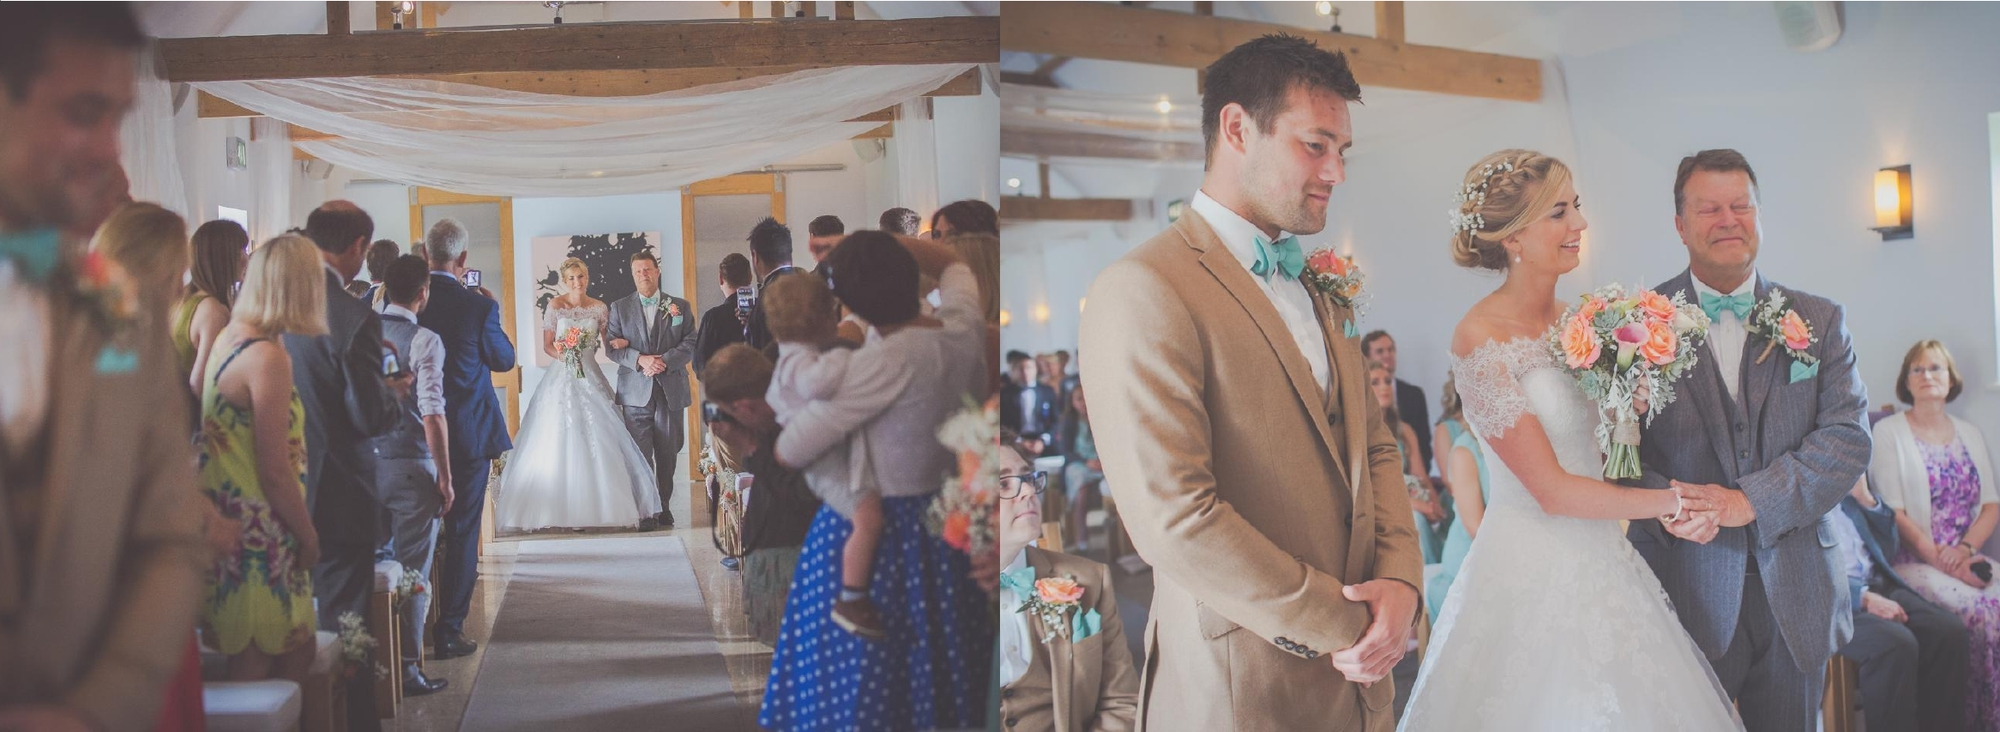 Southend Barns Wedding Photographers Justine Claire Chichester 6 .jpg